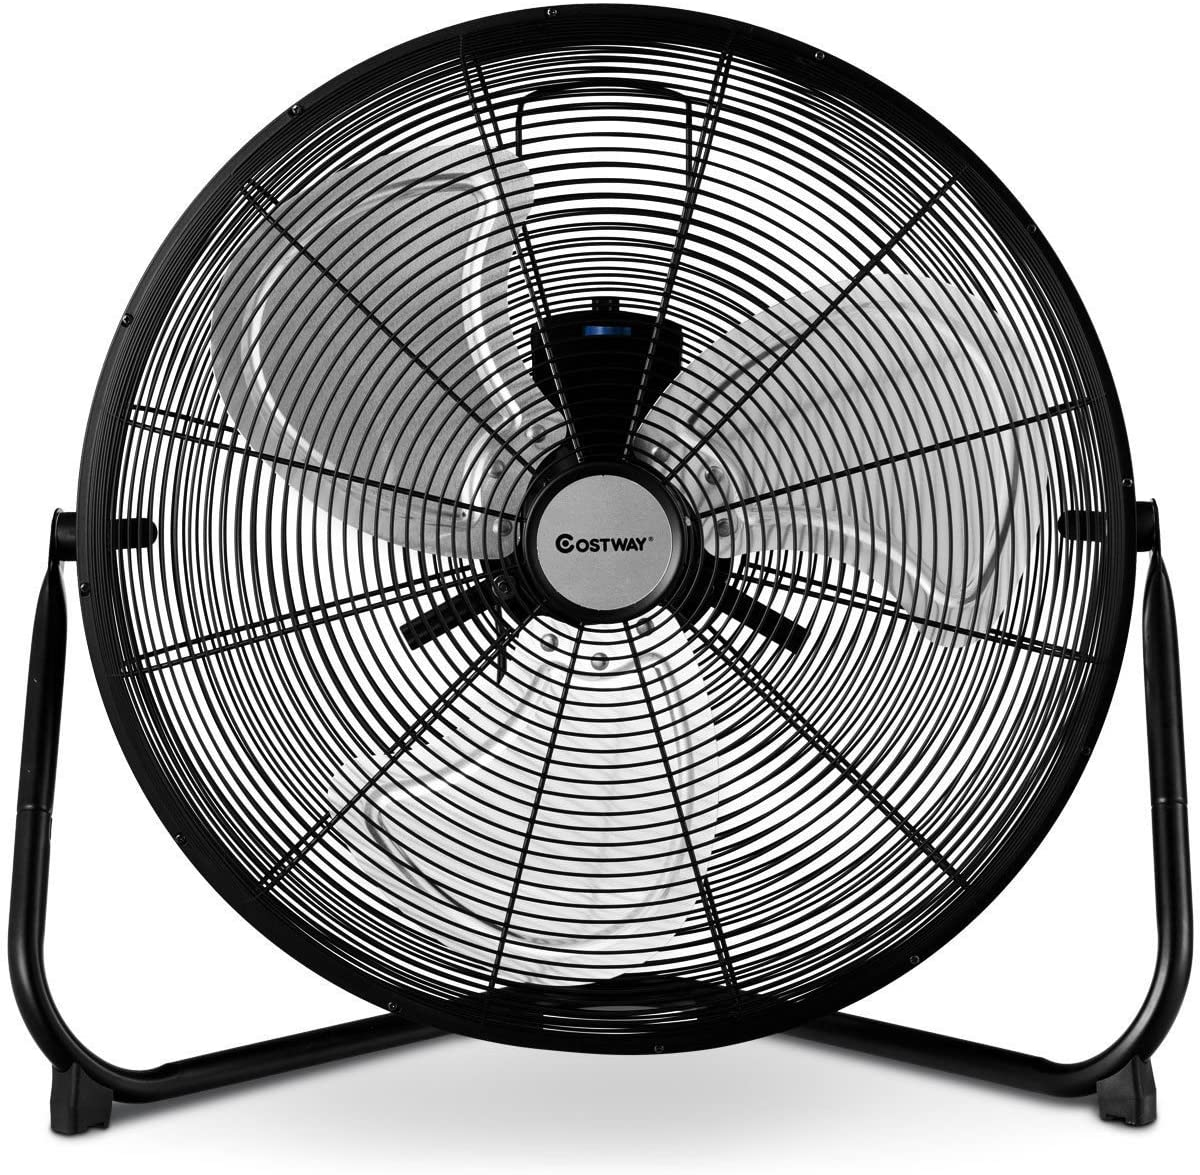 COSTWAY 20-Inch Black Floor Fan w/360° Rotation